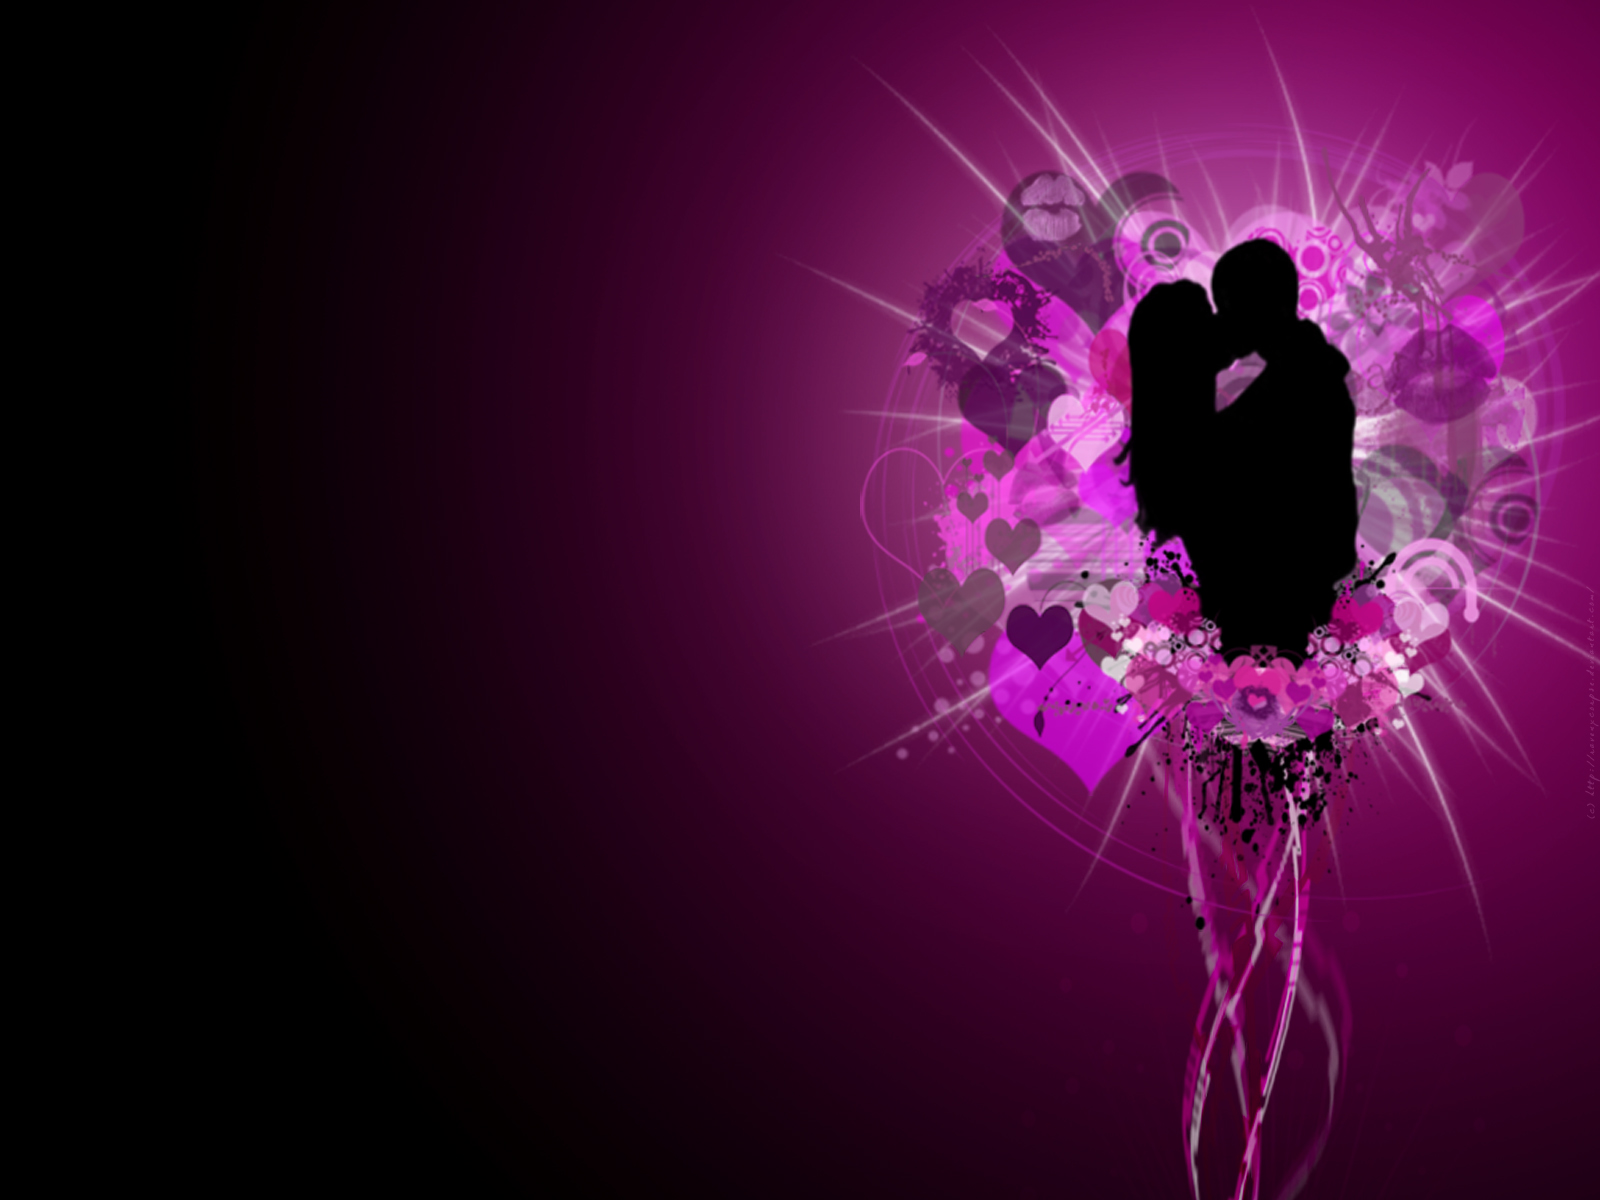 Romantic Love Wallpapers HD Wallpapers 1600x1200